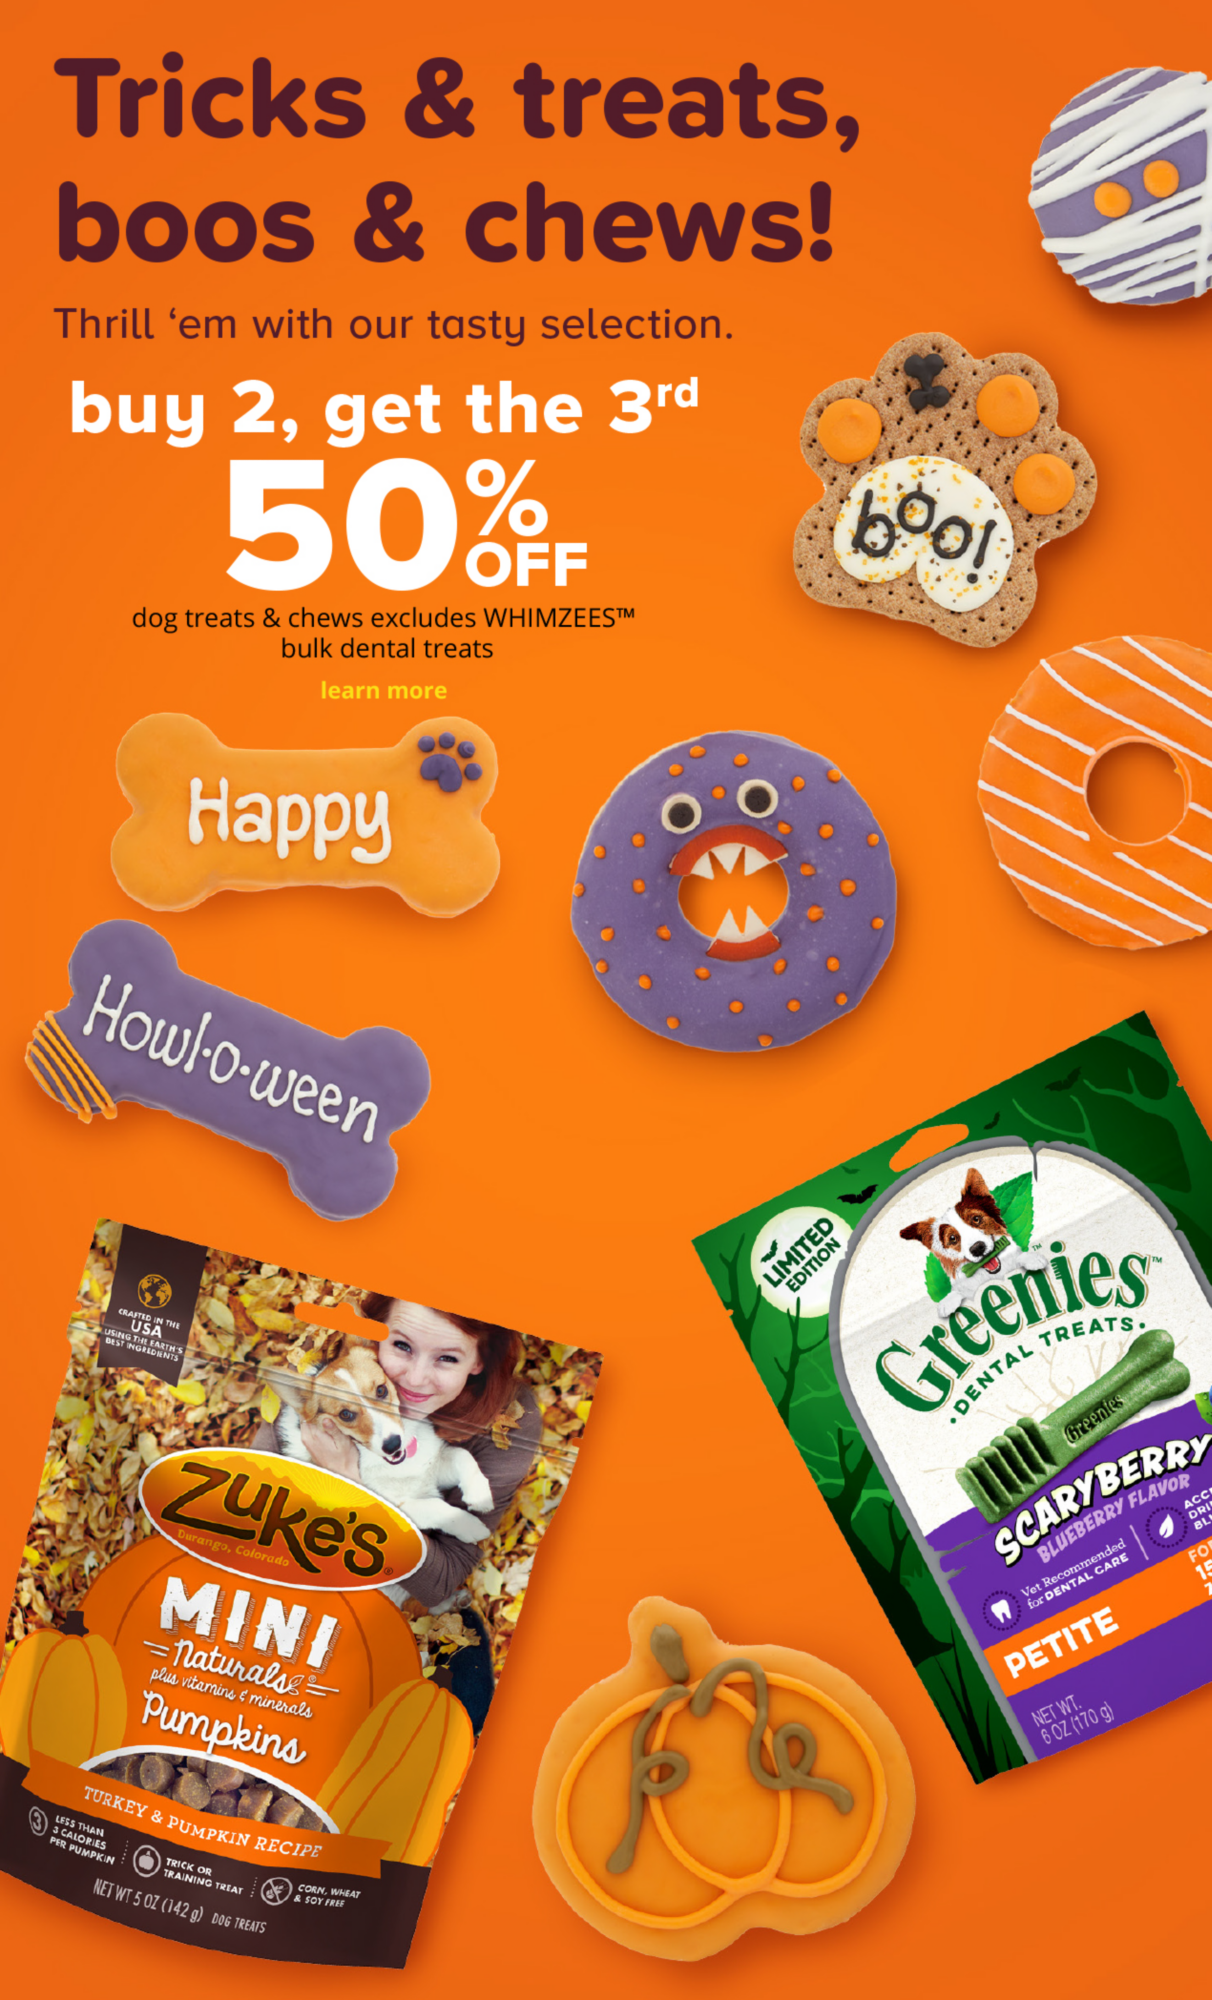 Tricks & treats, boos & chews! Thrill 'em with our tasty selection.